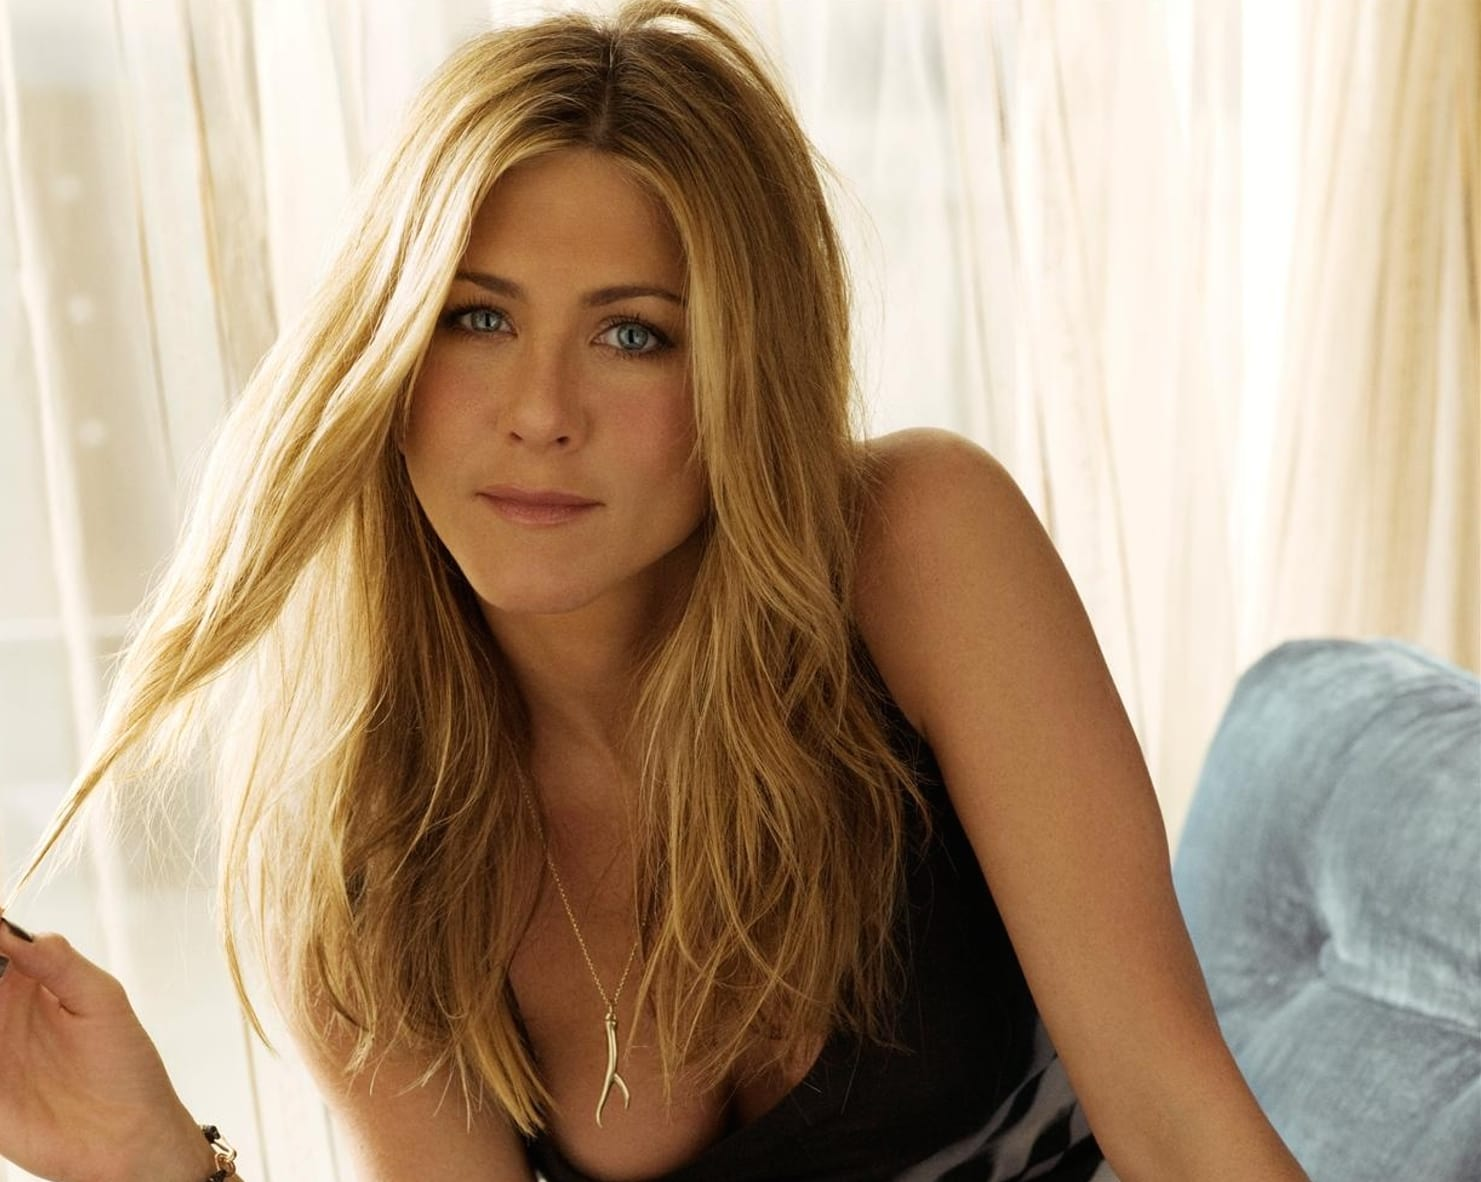 Has jennifer aniston ever been nude